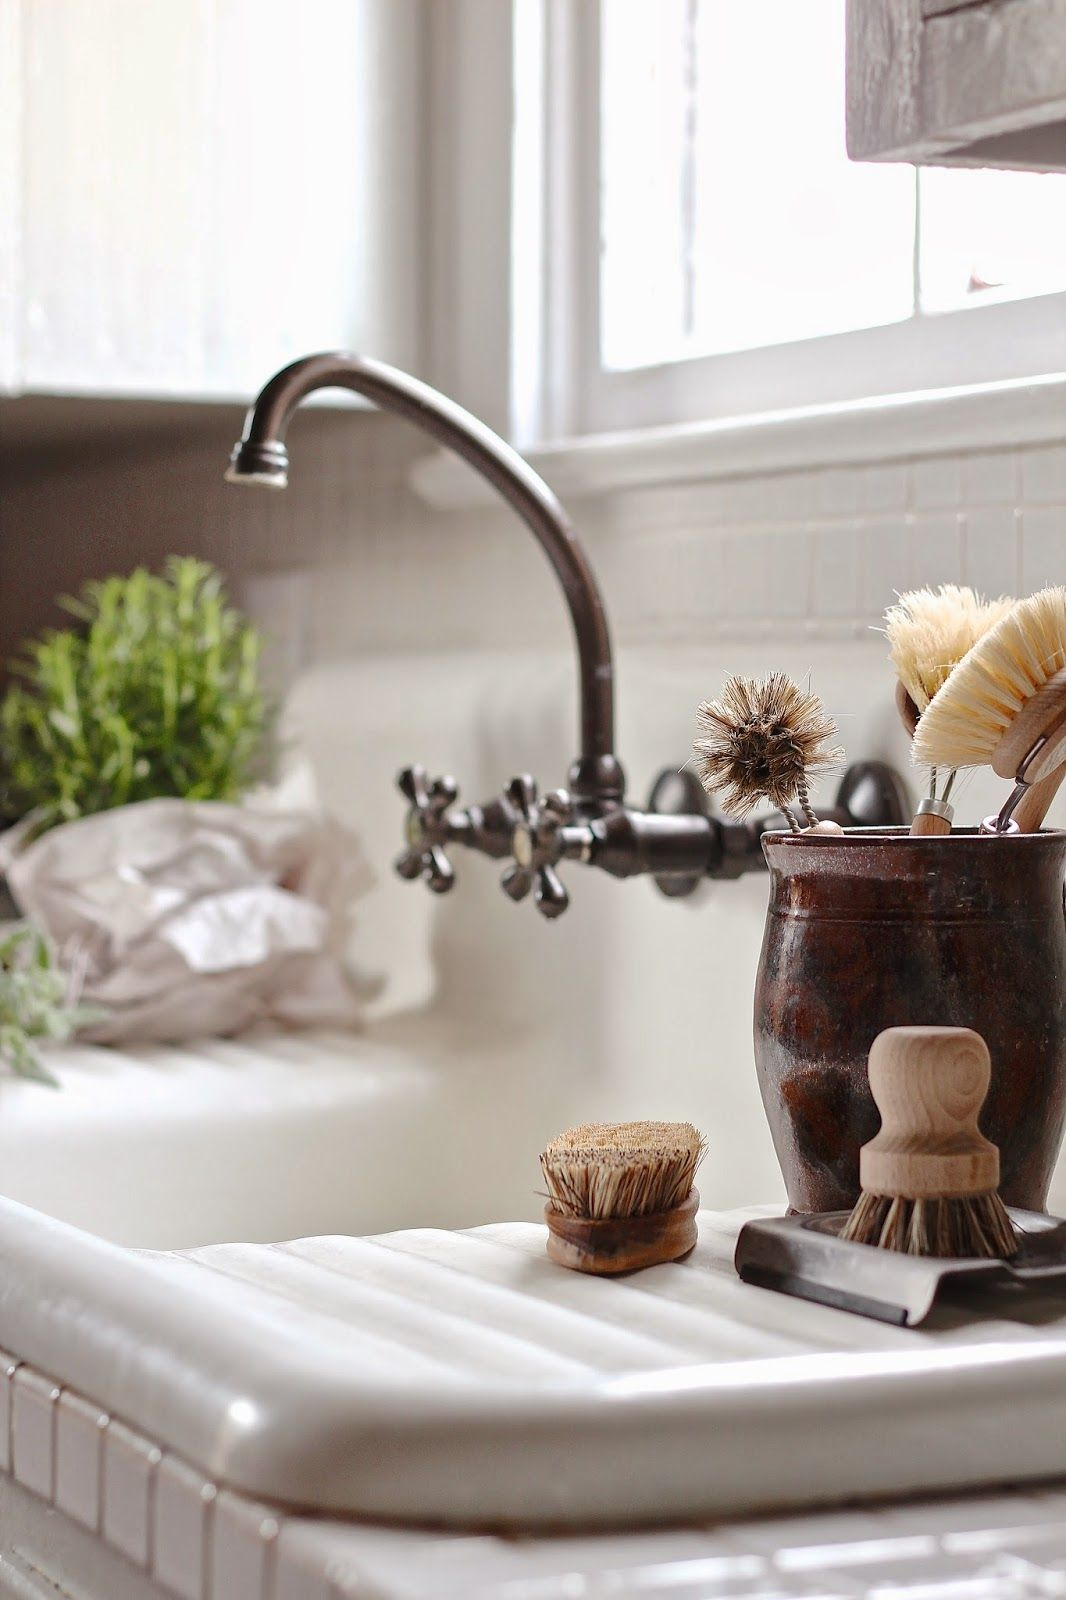 Kitchen sink on Curious Details   House and Home   Pinterest   Sinks ...